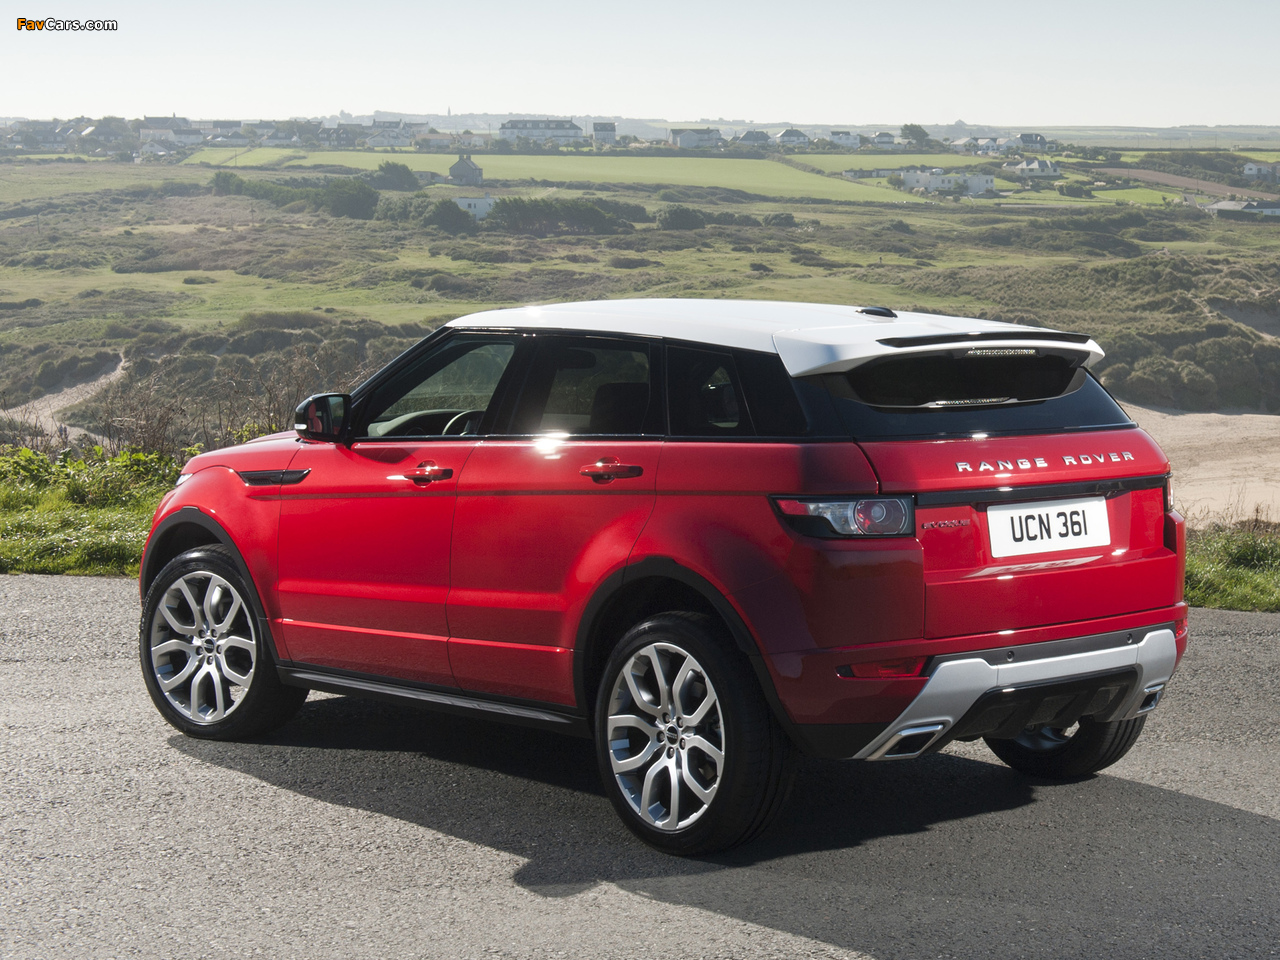 Range Rover Evoque Dynamic 2011 Images 1280x960